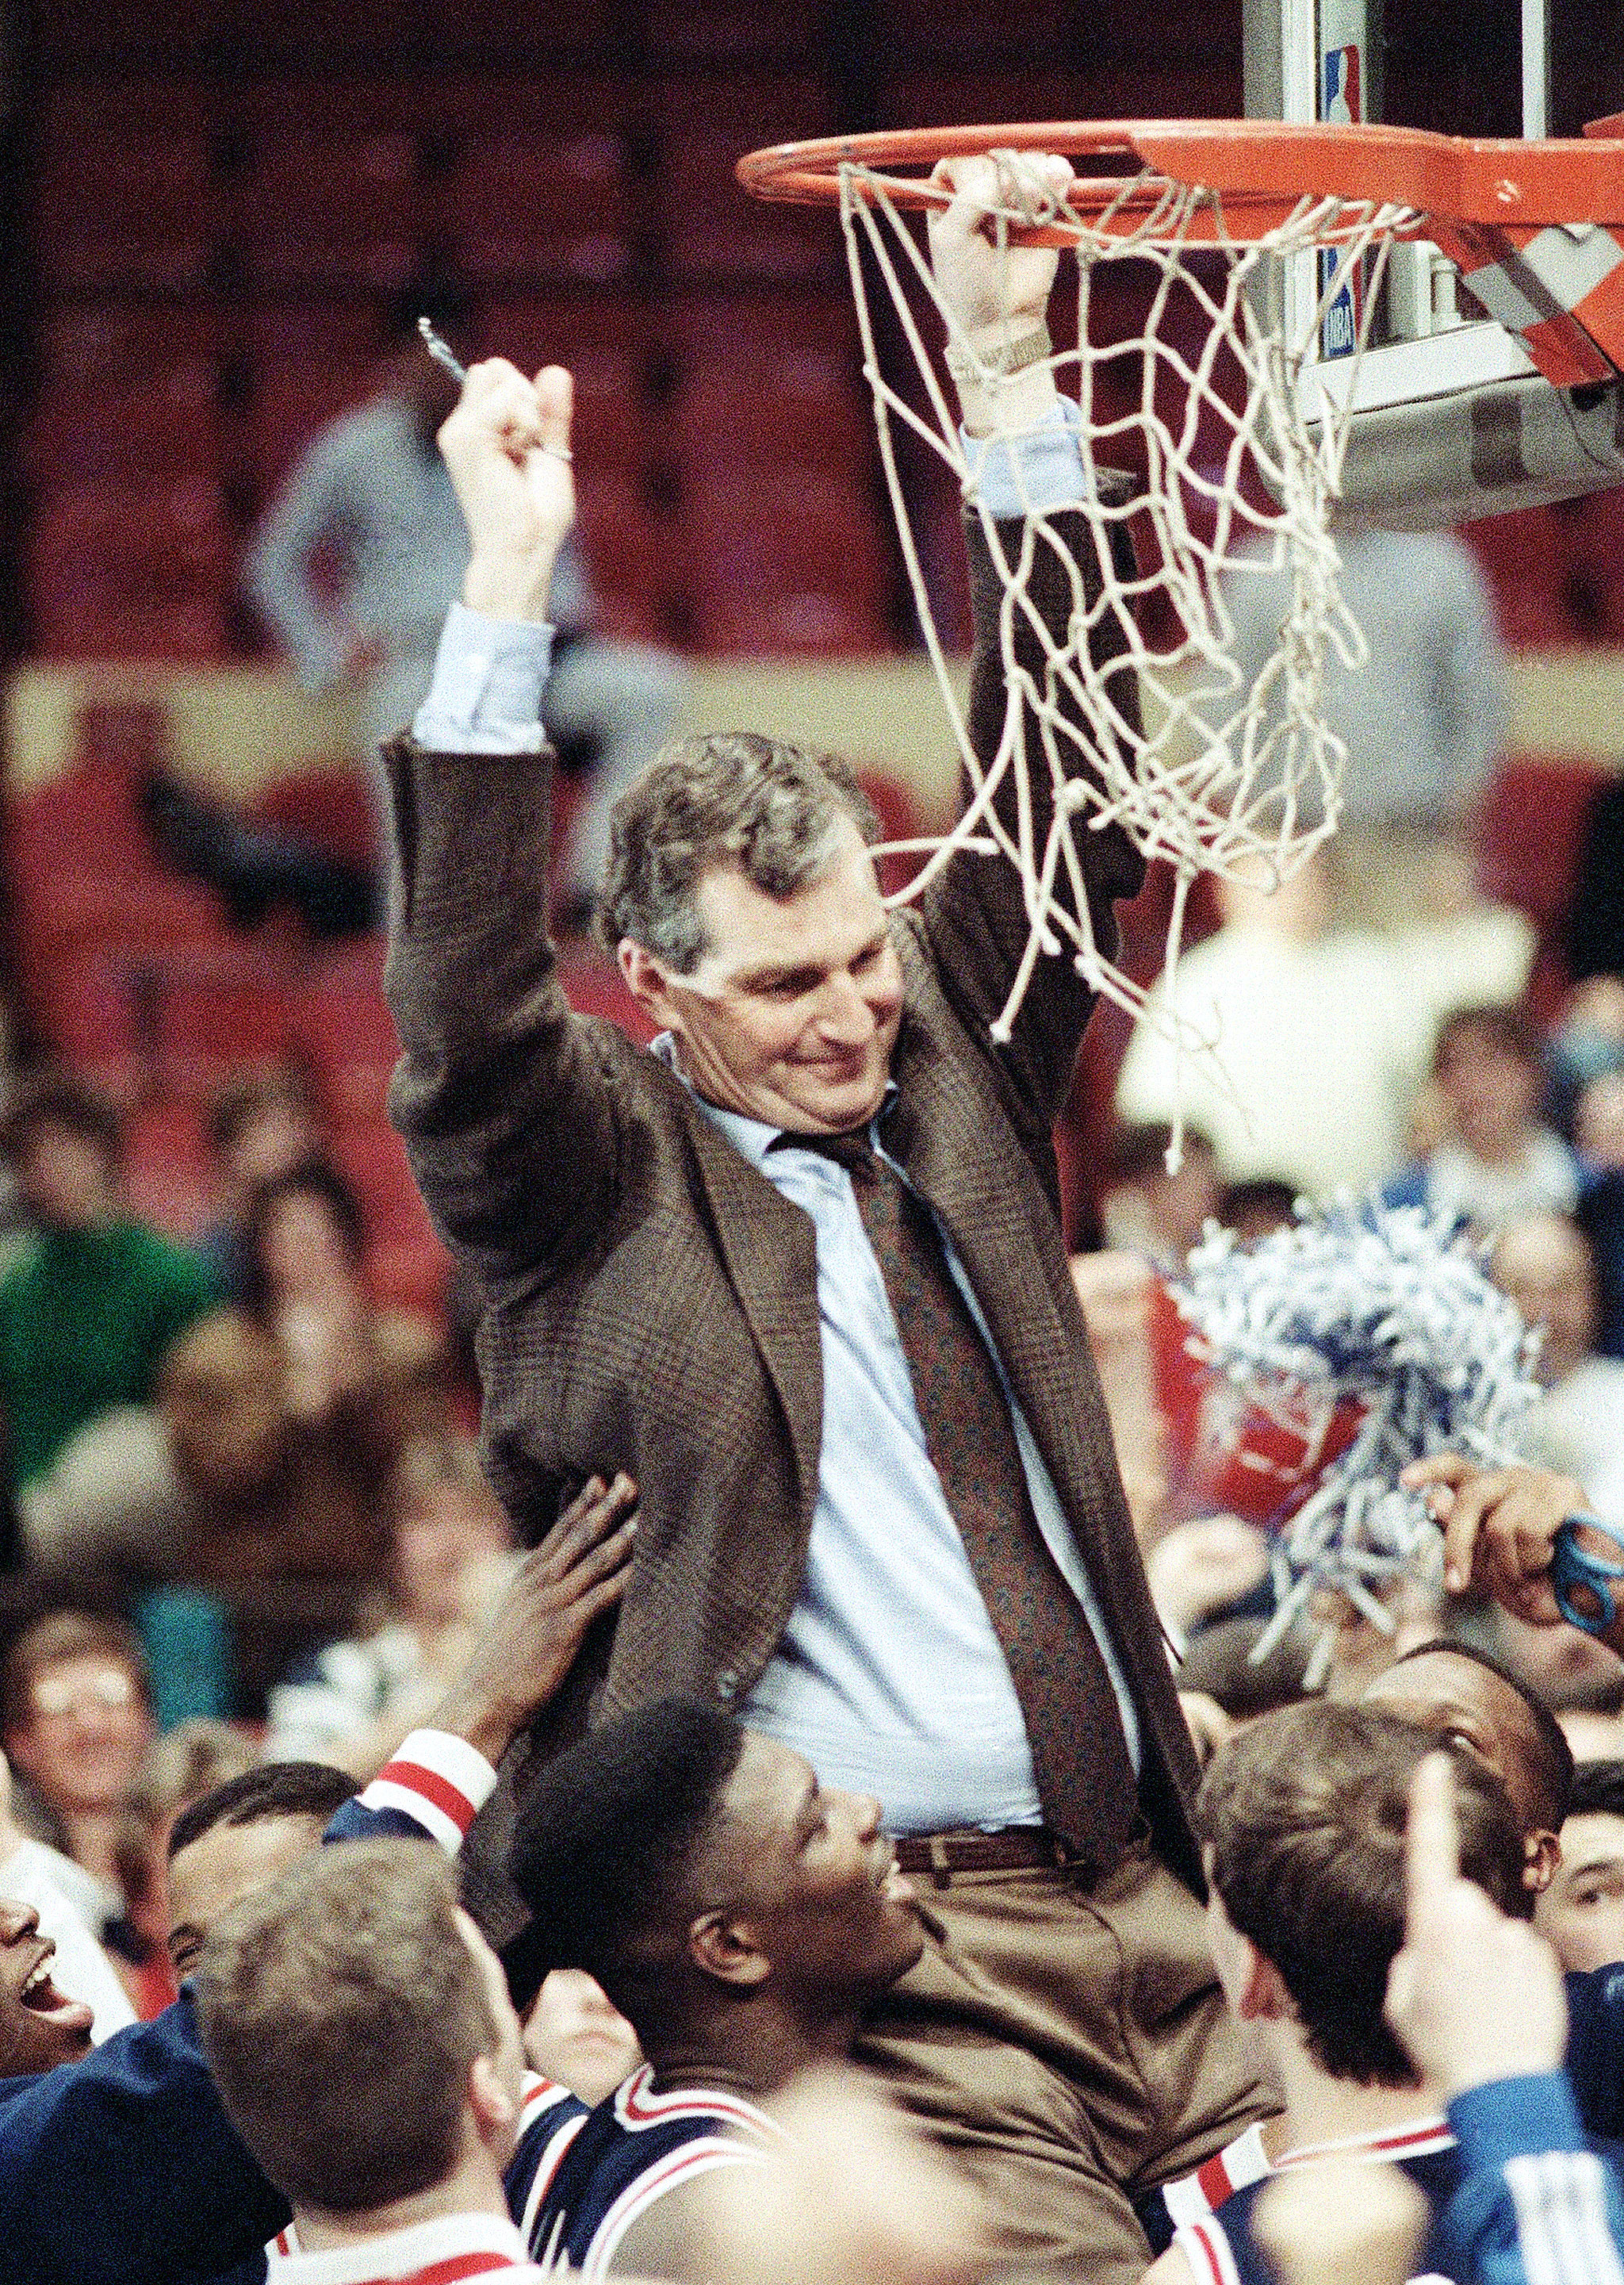 an introduction to the history of ncaa college basketball Prediction versus production: examining the relationship between ncaa history 7 coaching style may also contribute to the success of college basketball.